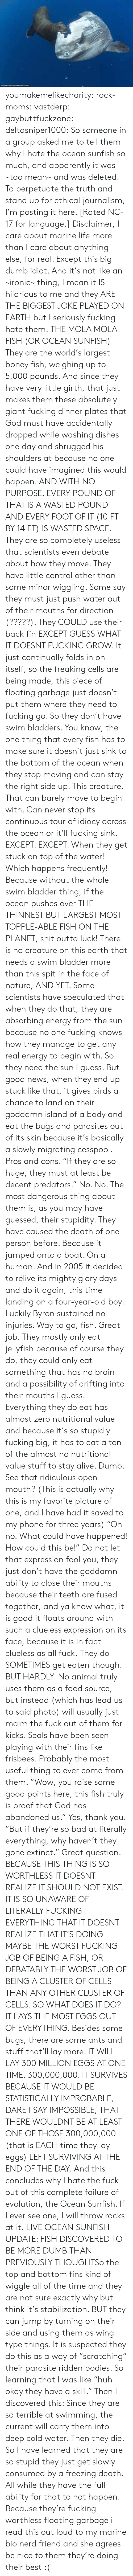 "ridden: ORihad Herrma M  S youmakemelikecharity:  rock-moms:  vastderp:  gaybuttfuckzone:  deltasniper1000:  So someone in a group asked me to tell them why I hate the ocean sunfish so much, and apparently it was ~too mean~ and was deleted. To perpetuate the truth and stand up for ethical journalism, I'm posting it here. [Rated NC-17 for language.]  Disclaimer, I care about marine life more than I care about anything else, for real. Except this big dumb idiot. And it's not like an ~ironic~ thing, I mean it IS hilarious to me and they ARE THE BIGGEST JOKE PLAYED ON EARTH but I seriously fucking hate them.  THE MOLA MOLA FISH (OR OCEAN SUNFISH)  They are the world's largest boney fish, weighing up to 5,000 pounds. And since they have very little girth, that just makes them these absolutely giant fucking dinner plates that God must have accidentally dropped while washing dishes one day and shrugged his shoulders at because no one could have imagined this would happen. AND WITH NO PURPOSE. EVERY POUND OF THAT IS A WASTED POUND AND EVERY FOOT OF IT (10 FT BY 14 FT) IS WASTED SPACE.  They are so completely useless that scientists even debate about how they move. They have little control other than some minor wiggling. Some say they must just push water out of their mouths for direction (?????). They COULD use their back fin EXCEPT GUESS WHAT IT DOESNT FUCKING GROW. It just continually folds in on itself, so the freaking cells are being made, this piece of floating garbage just doesn't put them where they need to fucking go.   So they don't have swim bladders. You know, the one thing that every fish has to make sure it doesn't just sink to the bottom of the ocean when they stop moving and can stay the right side up. This creature. That can barely move to begin with. Can never stop its continuous tour of idiocy across the ocean or it'll fucking sink. EXCEPT. EXCEPT. When they get stuck on top of the water! Which happens frequently! Because without the whole swim bladder thing, if the ocean pushes over THE THINNEST BUT LARGEST MOST TOPPLE-ABLE FISH ON THE PLANET, shit outta luck! There is no creature on this earth that needs a swim bladder more than this spit in the face of nature, AND YET. Some scientists have speculated that when they do that, they are absorbing energy from the sun because no one fucking knows how they manage to get any real energy to begin with. So they need the sun I guess. But good news, when they end up stuck like that, it gives birds a chance to land on their goddamn island of a body and eat the bugs and parasites out of its skin because it's basically a slowly migrating cesspool. Pros and cons.   ""If they are so huge, they must at least be decent predators."" No. No. The most dangerous thing about them is, as you may have guessed, their stupidity. They have caused the death of one person before. Because it jumped onto a boat. On a human. And in 2005 it decided to relive its mighty glory days and do it again, this time landing on a four-year-old boy. Luckily Byron sustained no injuries. Way to go, fish. Great job.  They mostly only eat jellyfish because of course they do, they could only eat something that has no brain and a possibility of drifting into their mouths I guess. Everything they do eat has almost zero nutritional value and because it's so stupidly fucking big, it has to eat a ton of the almost no nutritional value stuff to stay alive. Dumb. See that ridiculous open mouth? (This is actually why this is my favorite picture of one, and I have had it saved to my phone for three years) ""Oh no! What could have happened! How could this be!"" Do not let that expression fool you, they just don't have the goddamn ability to close their mouths because their teeth are fused together, and ya know what, it is good it floats around with such a clueless expression on its face, because it is in fact clueless as all fuck.  They do SOMETIMES get eaten though. BUT HARDLY. No animal truly uses them as a food source, but instead (which has lead us to said photo) will usually just maim the fuck out of them for kicks. Seals have been seen playing with their fins like frisbees. Probably the most useful thing to ever come from them.   ""Wow, you raise some good points here, this fish truly is proof that God has abandoned us."" Yes, thank you. ""But if they're so bad at literally everything, why haven't they gone extinct."" Great question.   BECAUSE THIS THING IS SO WORTHLESS IT DOESNT REALIZE IT SHOULD NOT EXIST. IT IS SO UNAWARE OF LITERALLY FUCKING EVERYTHING THAT IT DOESNT REALIZE THAT IT'S DOING MAYBE THE WORST FUCKING JOB OF BEING A FISH, OR DEBATABLY THE WORST JOB OF BEING A CLUSTER OF CELLS THAN ANY OTHER CLUSTER OF CELLS. SO WHAT DOES IT DO? IT LAYS THE MOST EGGS OUT OF EVERYTHING. Besides some bugs, there are some ants and stuff that'll lay more. IT WILL LAY 300 MILLION EGGS AT ONE TIME. 300,000,000. IT SURVIVES BECAUSE IT WOULD BE STATISTICALLY IMPROBABLE, DARE I SAY IMPOSSIBLE, THAT THERE WOULDNT BE AT LEAST ONE OF THOSE 300,000,000 (that is EACH time they lay eggs) LEFT SURVIVING AT THE END OF THE DAY.   And this concludes why I hate the fuck out of this complete failure of evolution, the Ocean Sunfish. If I ever see one, I will throw rocks at it.   LIVE OCEAN SUNFISH UPDATE: FISH DISCOVERED TO BE MORE DUMB THAN PREVIOUSLY THOUGHTSo  the top and bottom fins kind of wiggle all of the time and they are not  sure exactly why but think it's stabilization. BUT they can jump by  turning on their side and using them as  wing type things. It is suspected they do this as a way of ""scratching""  their parasite ridden bodies. So learning that I was like ""huh okay they  have a skill."" Then I discovered this: Since they  are so terrible at swimming, the current will carry them into deep cold  water. Then they die. So I have learned that they are so stupid they  just get slowly consumed by a freezing death. All while they have the  full ability for that to not happen. Because they're fucking worthless  floating garbage    i read this out loud to my marine bio nerd friend and she agrees   be nice to them they're doing their best :("